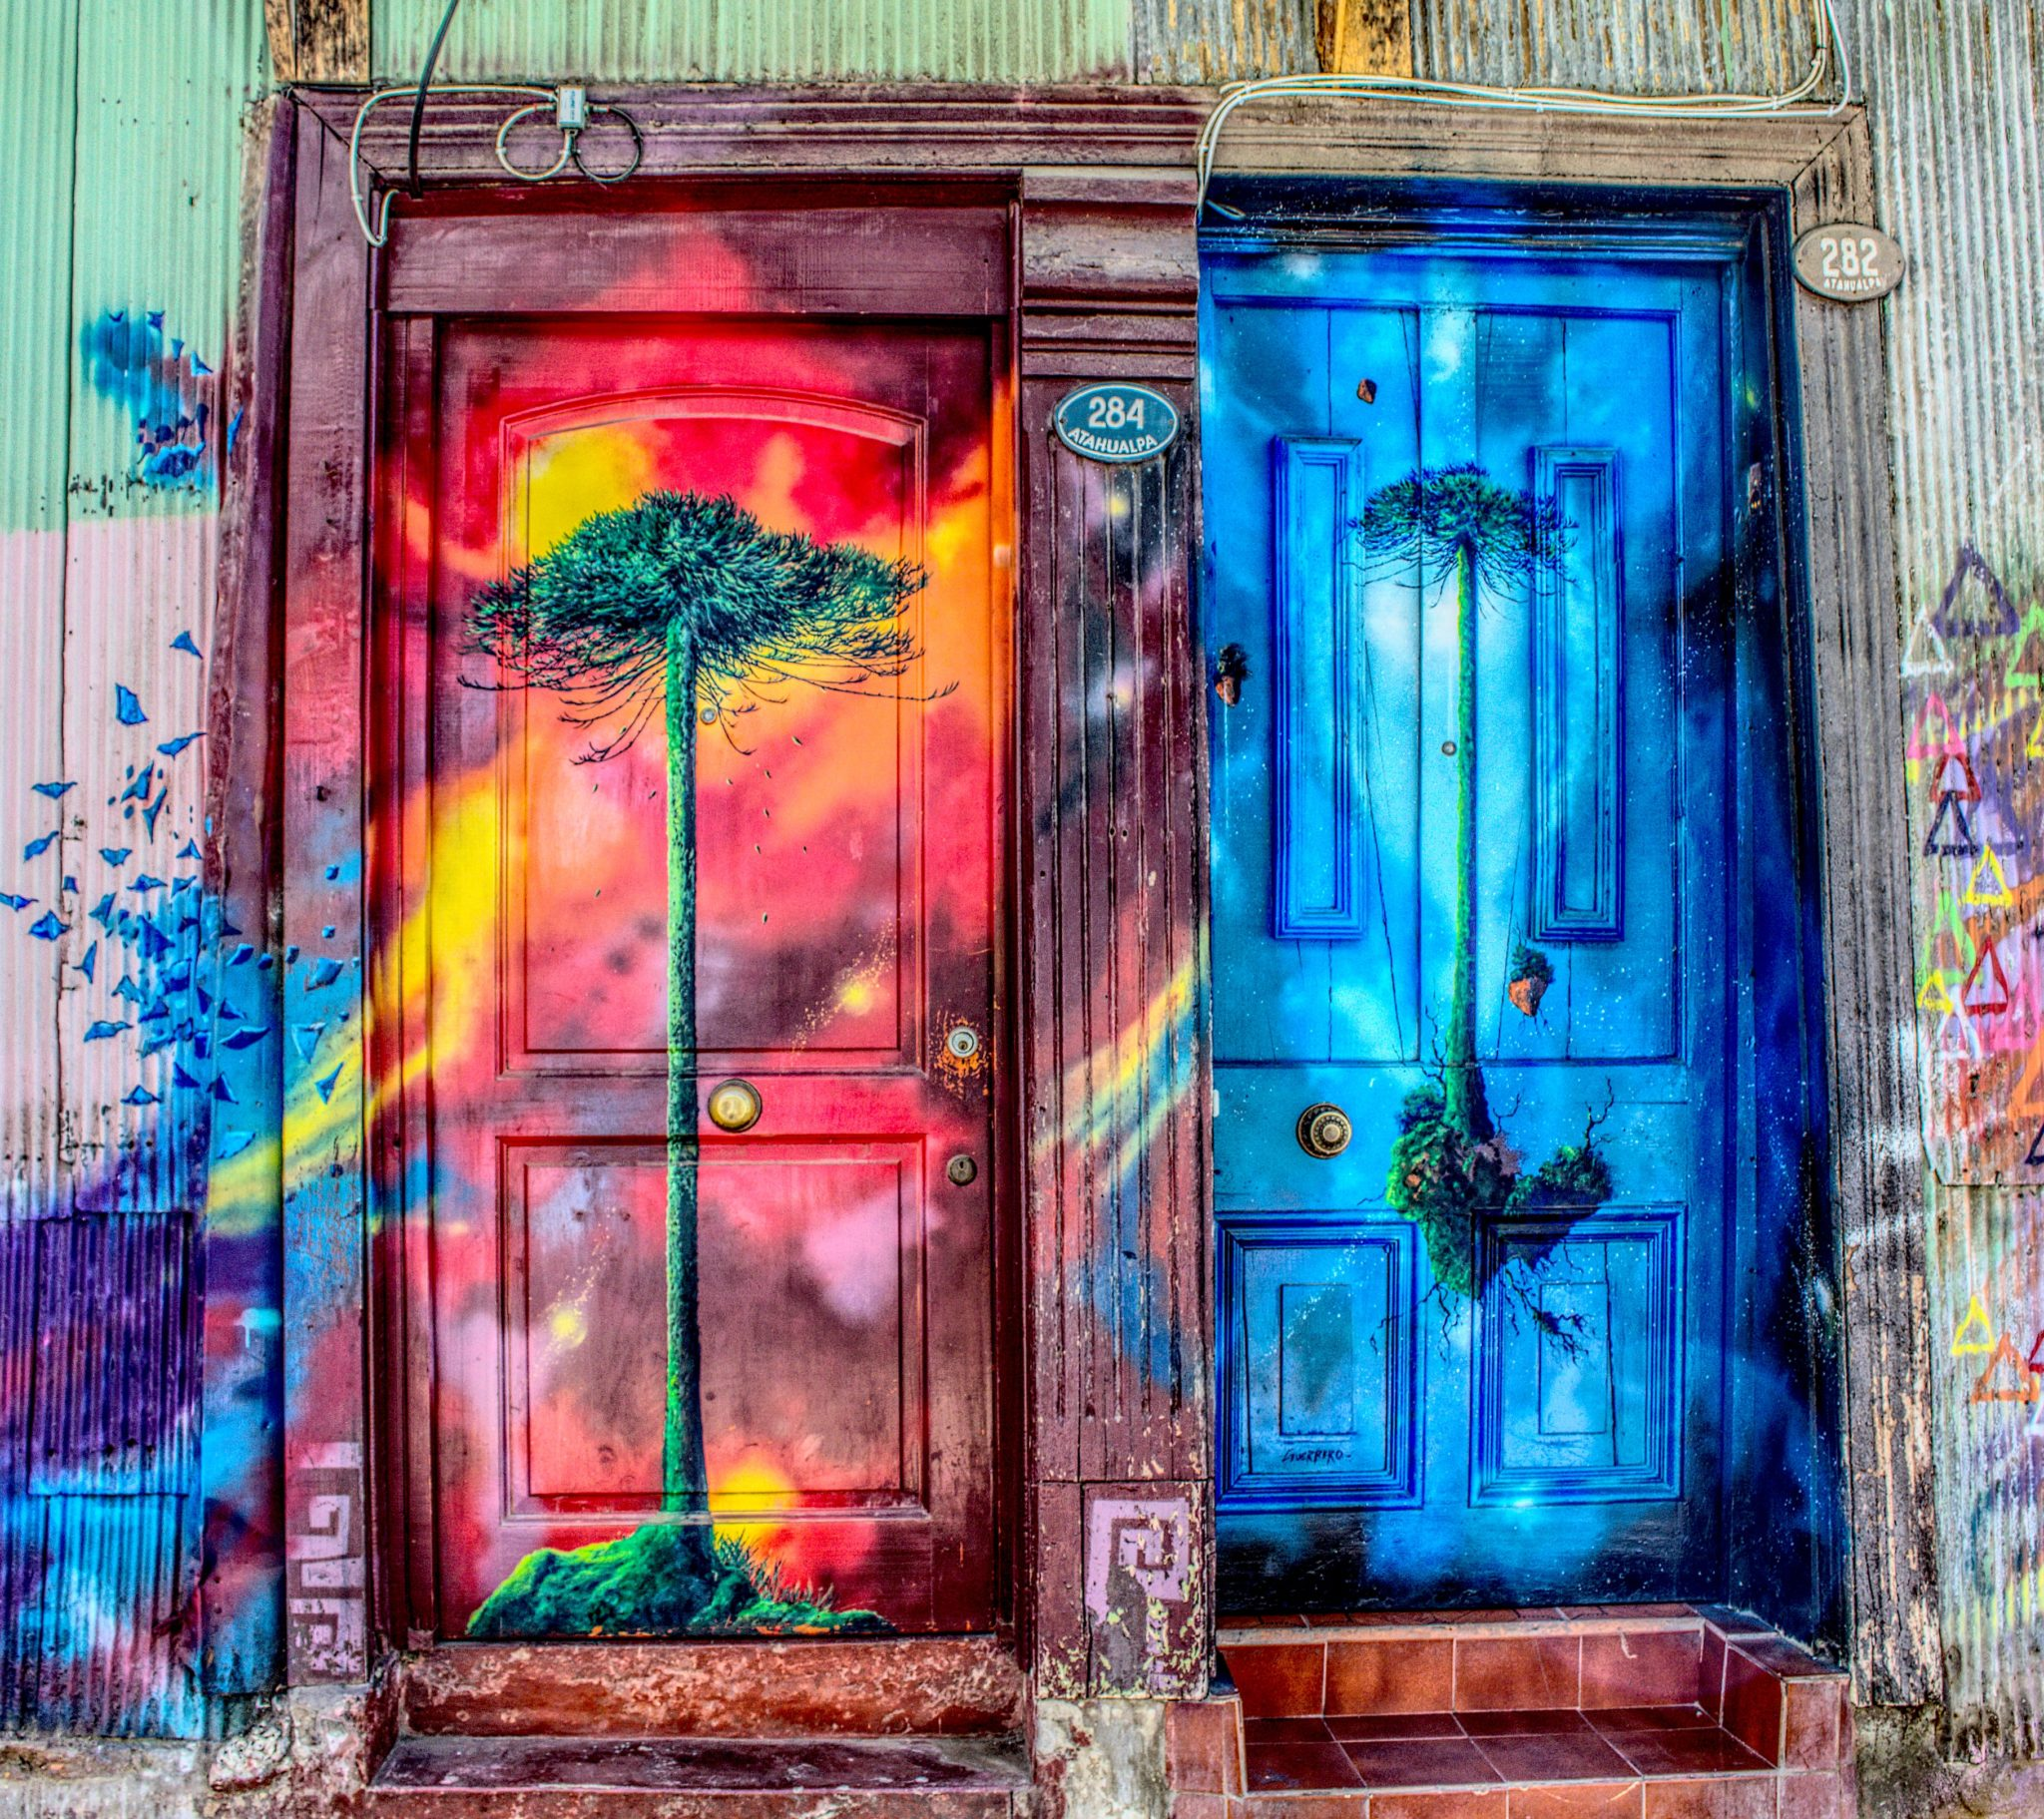 two artistic doors